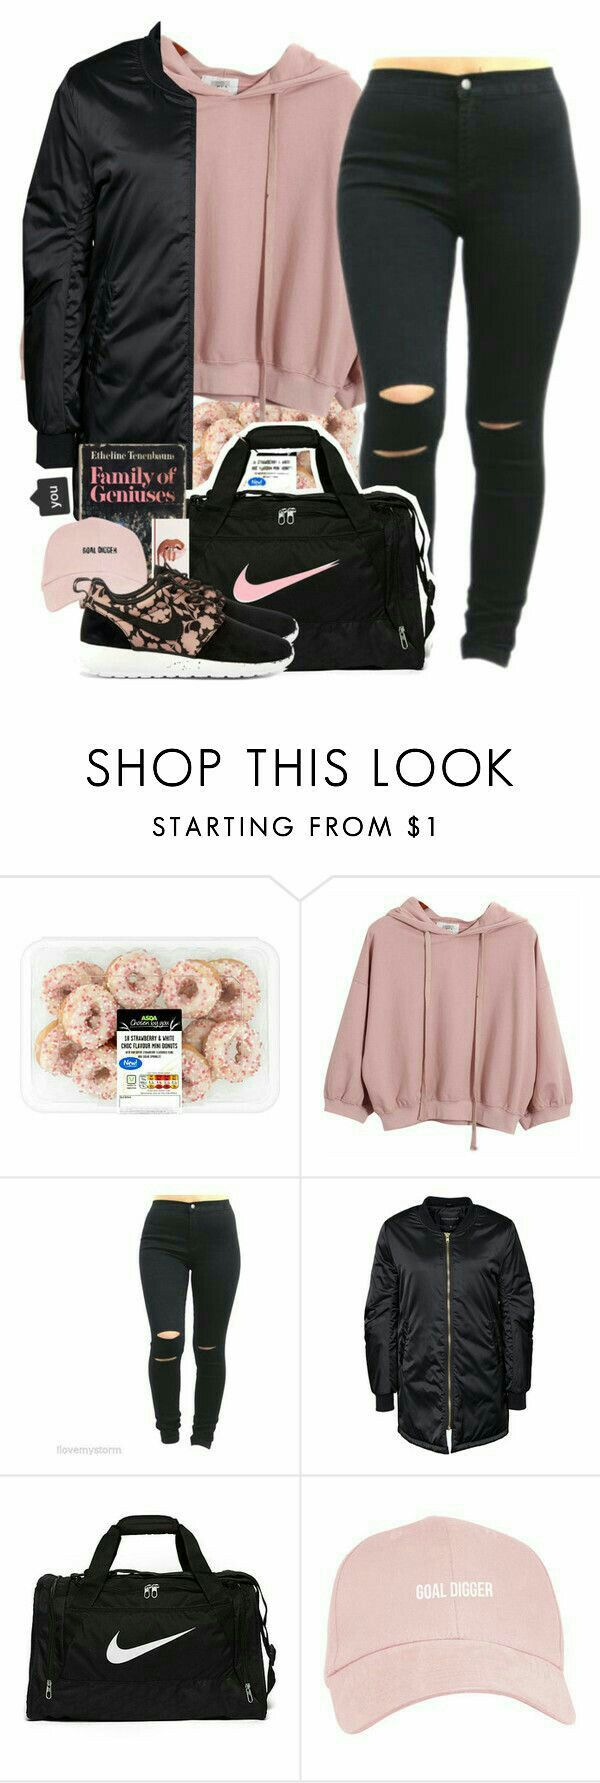 best bae fashion and style ideas images on pinterest casual